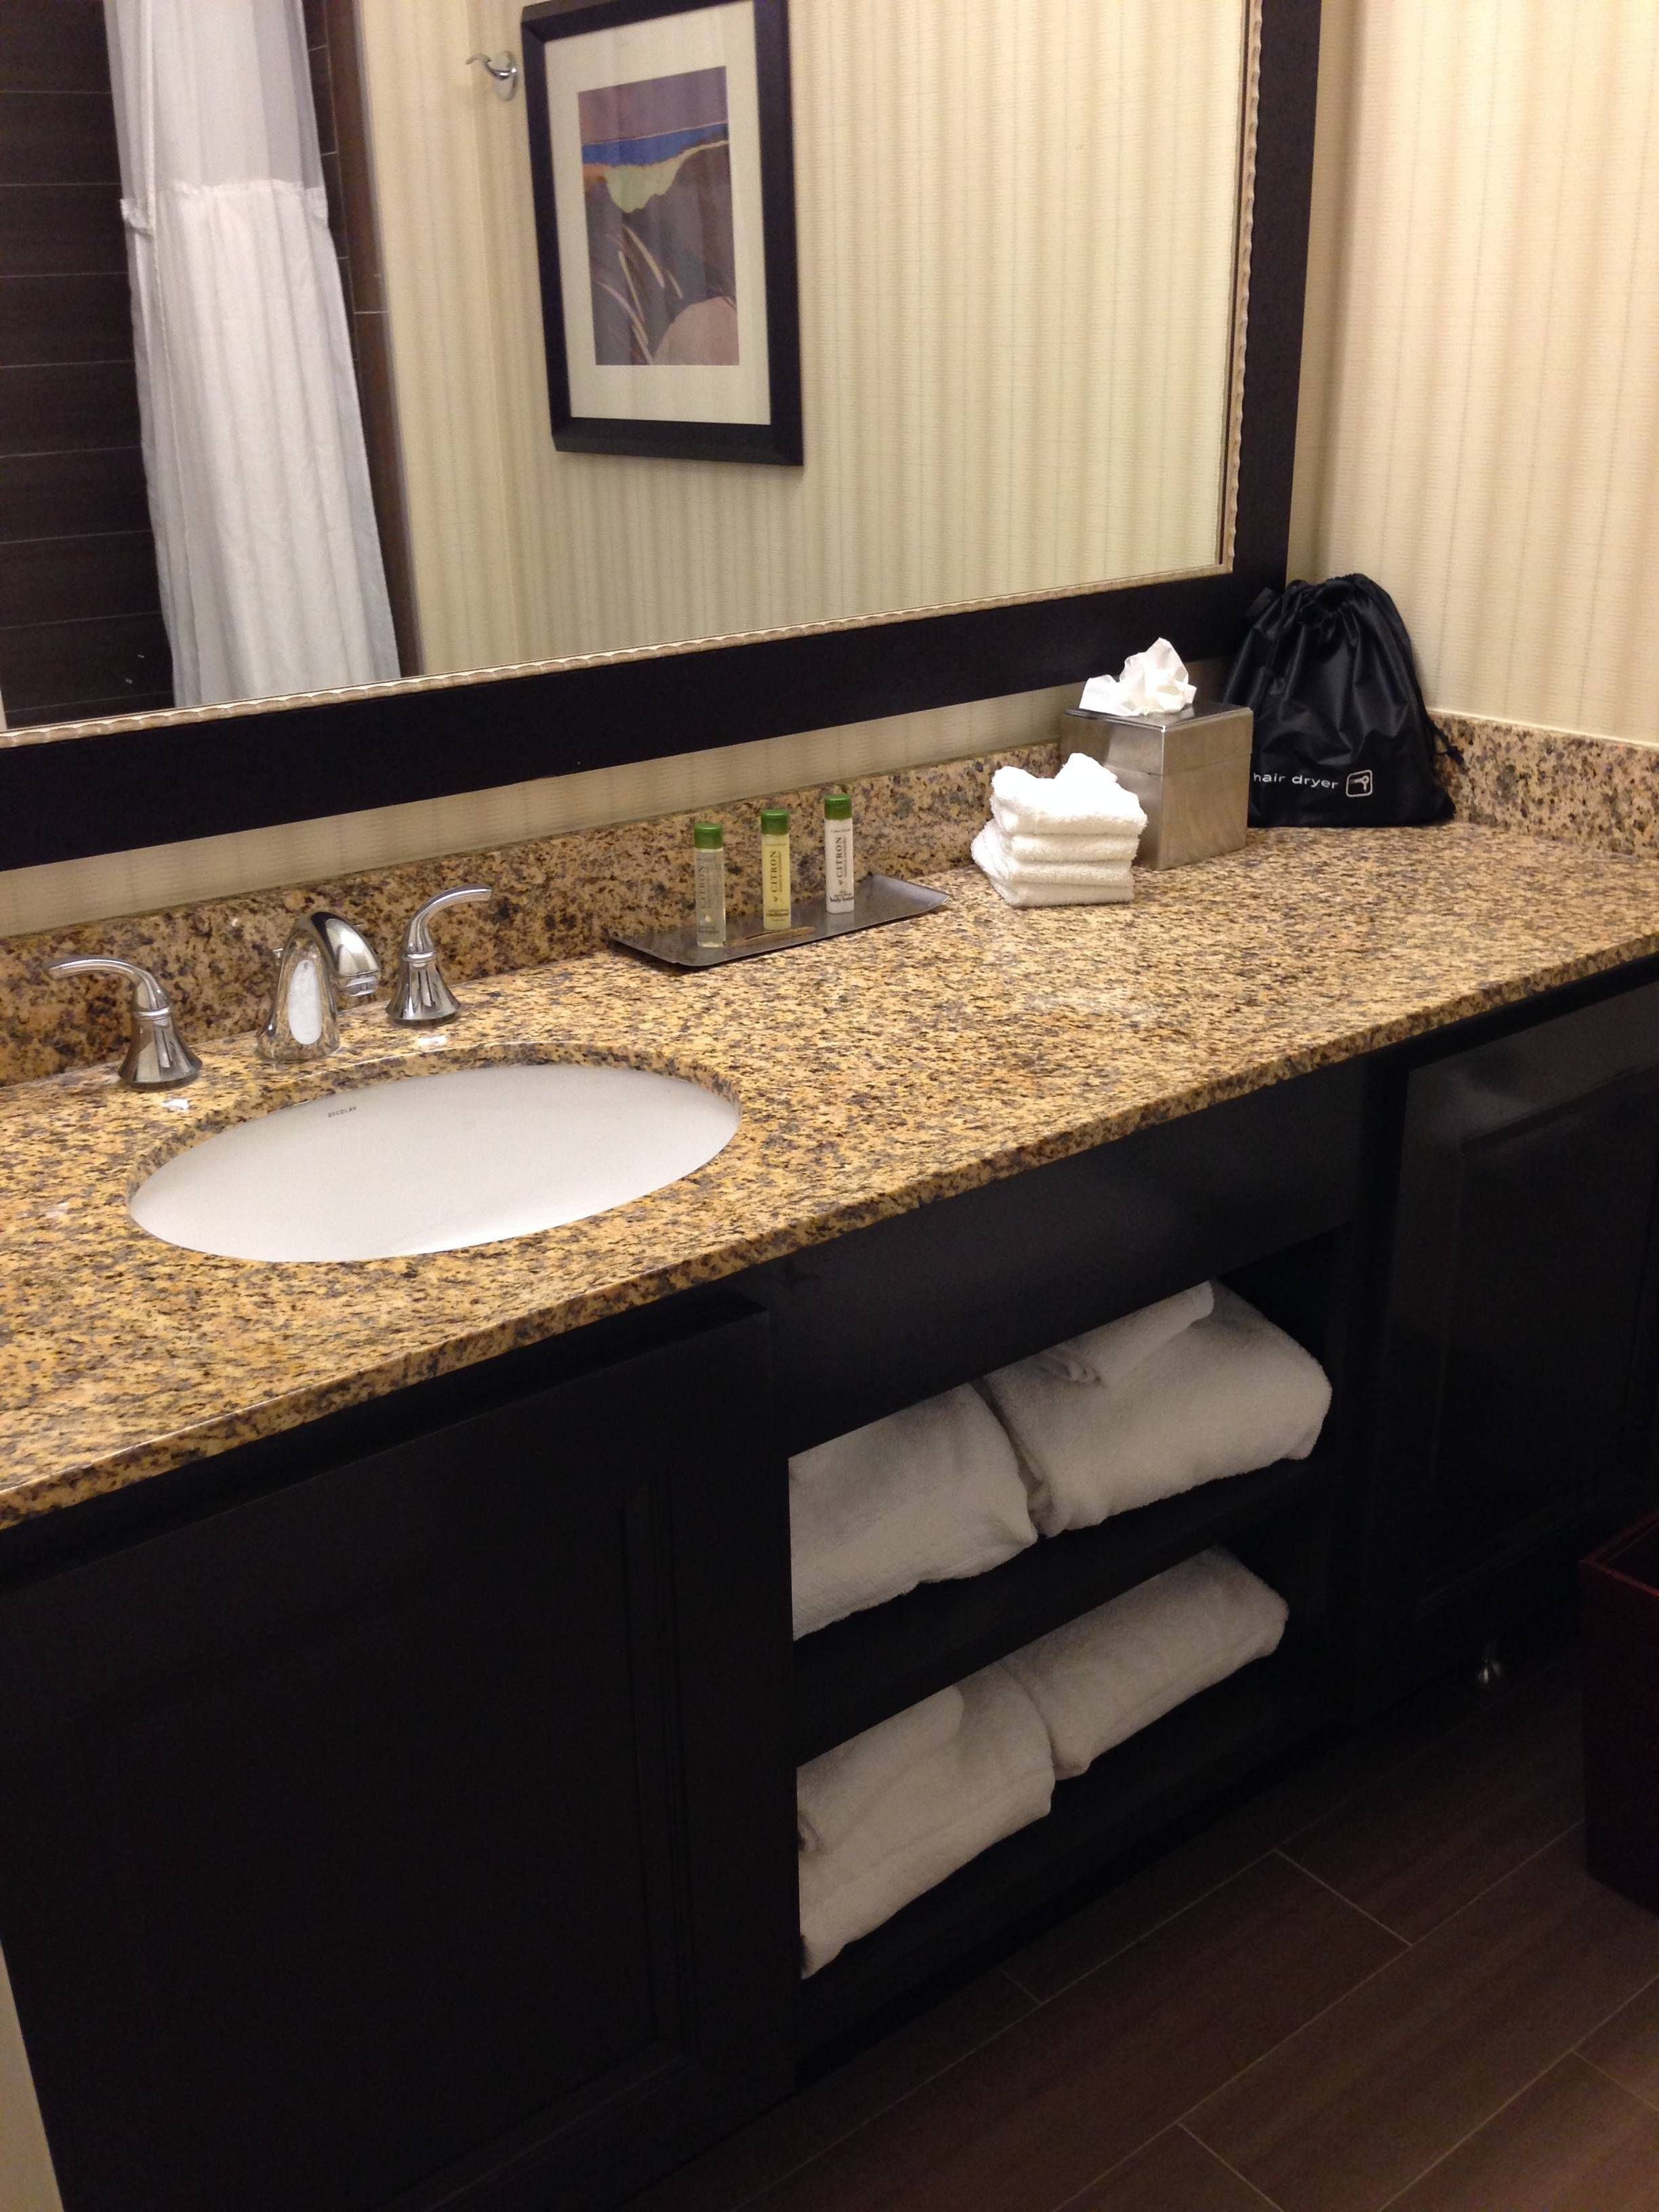 Doubletree Suites Lake Buena Vista